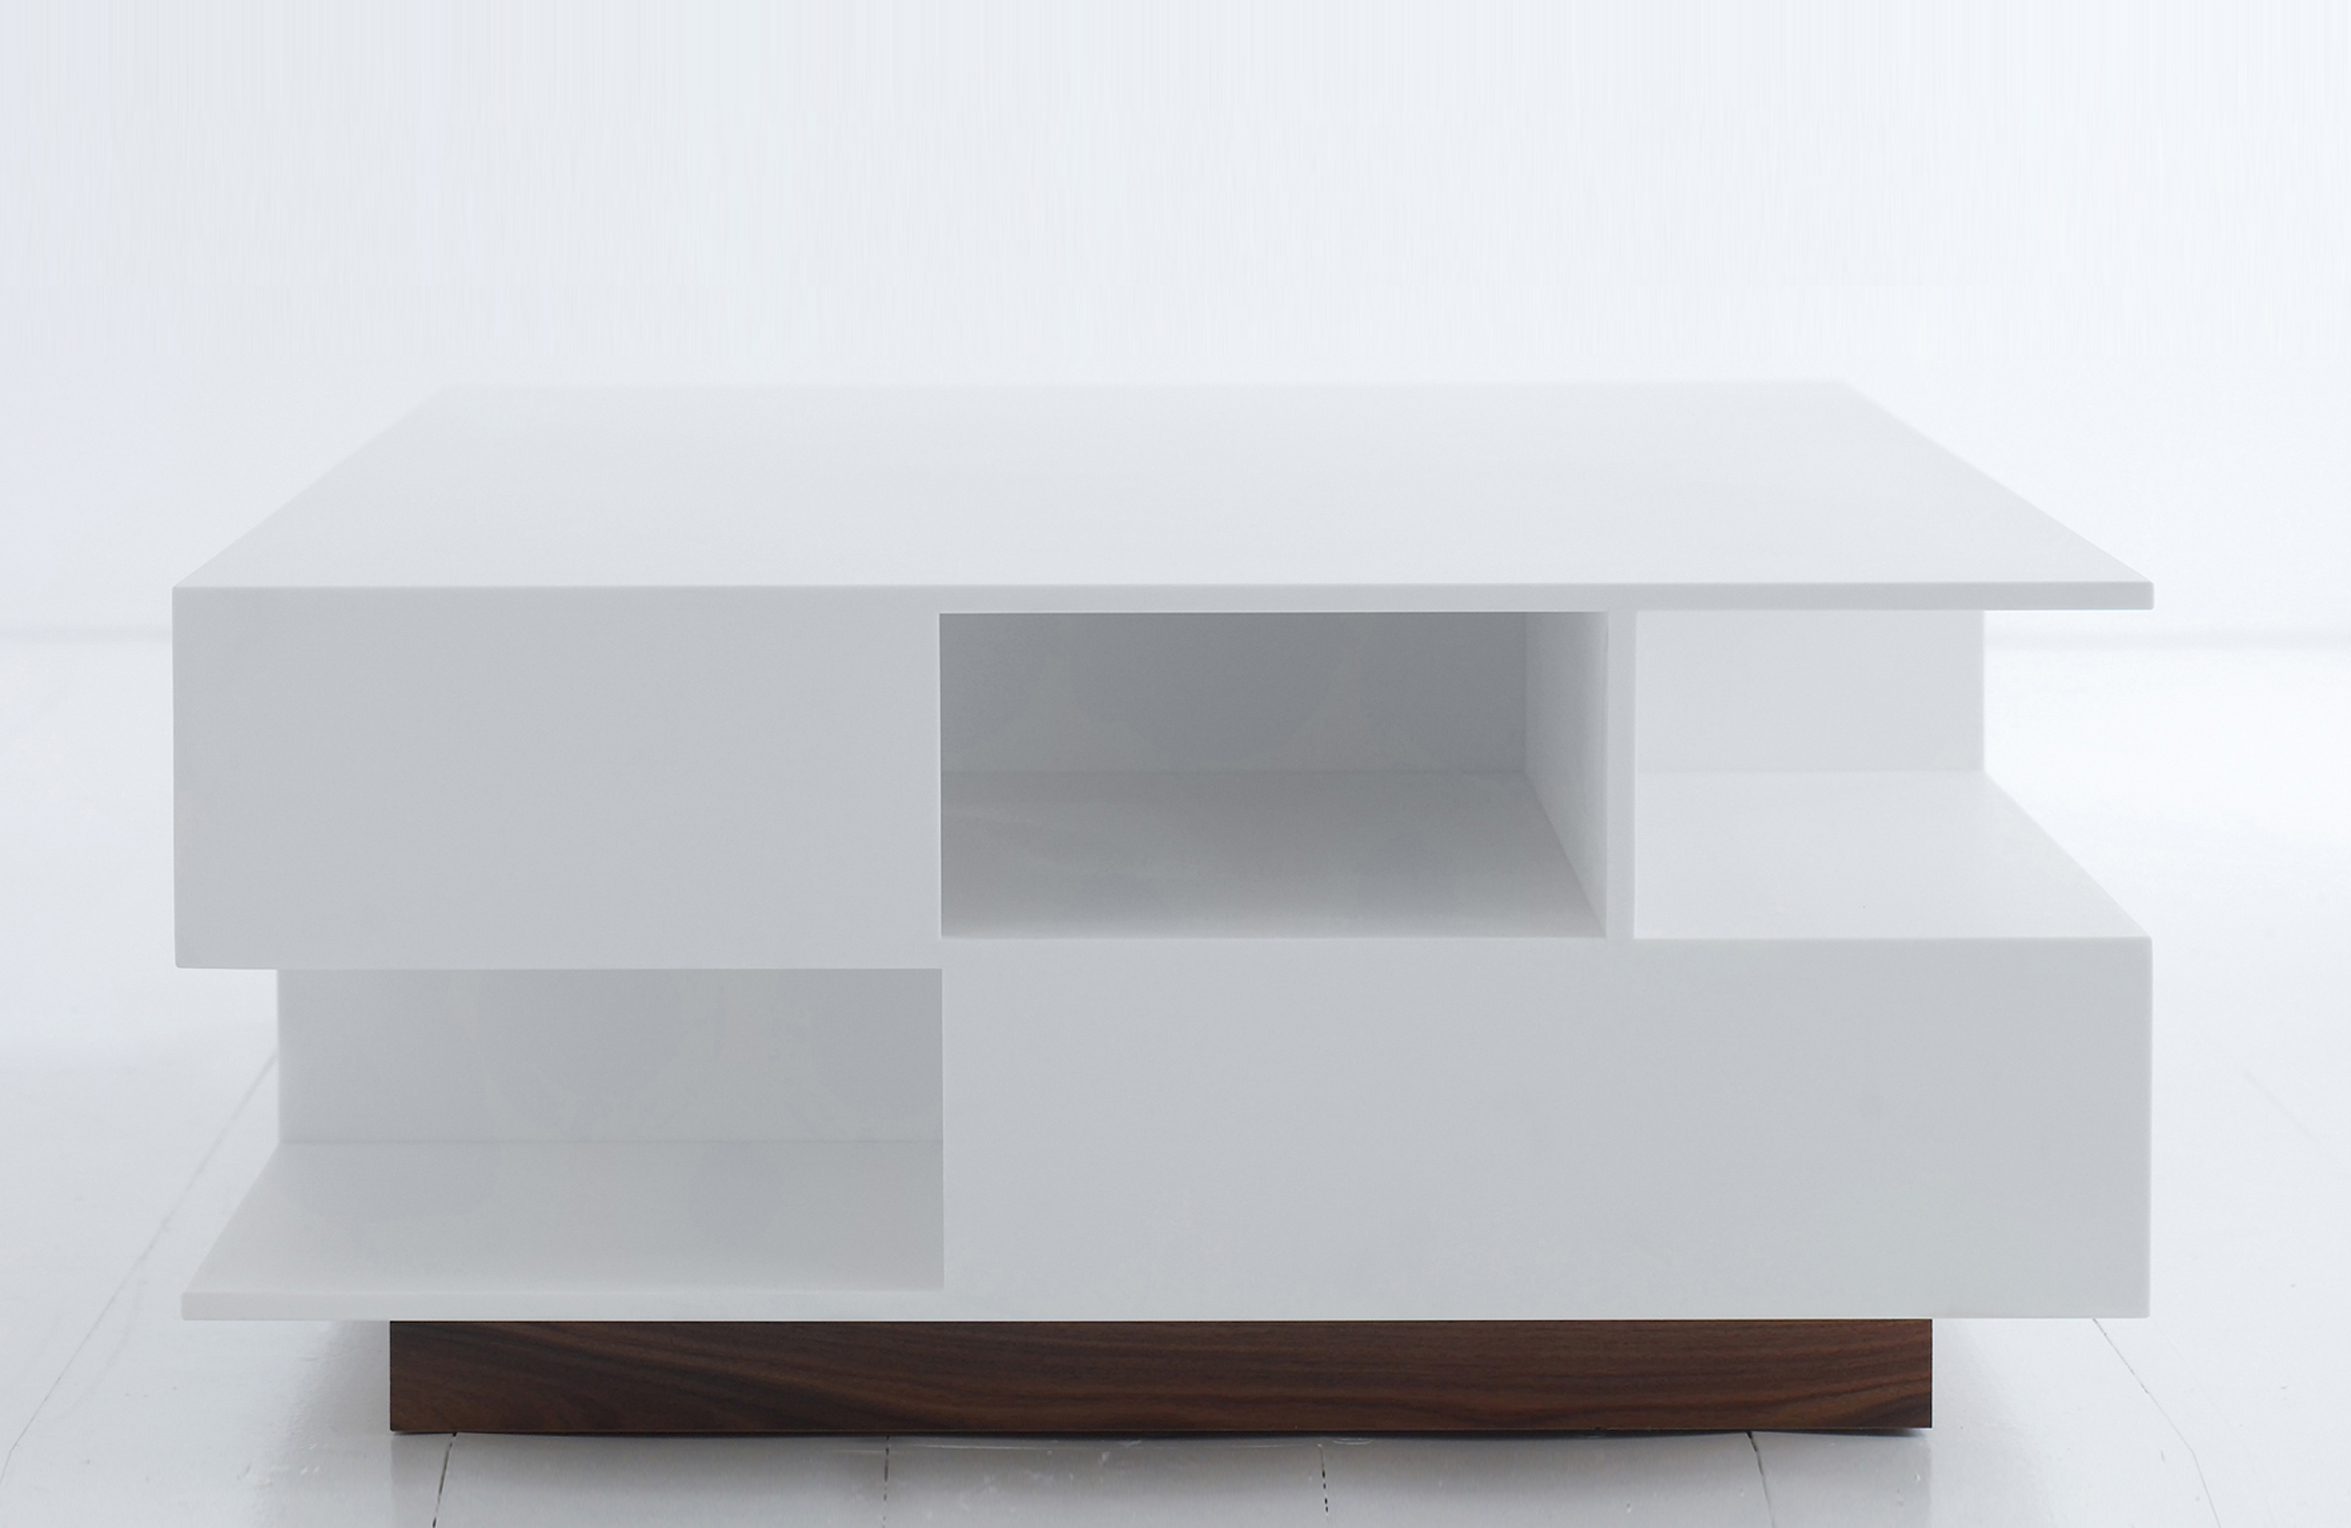 Penthouse coffee table 80x140x36cm in snowwhite composite. Design Morten Voss